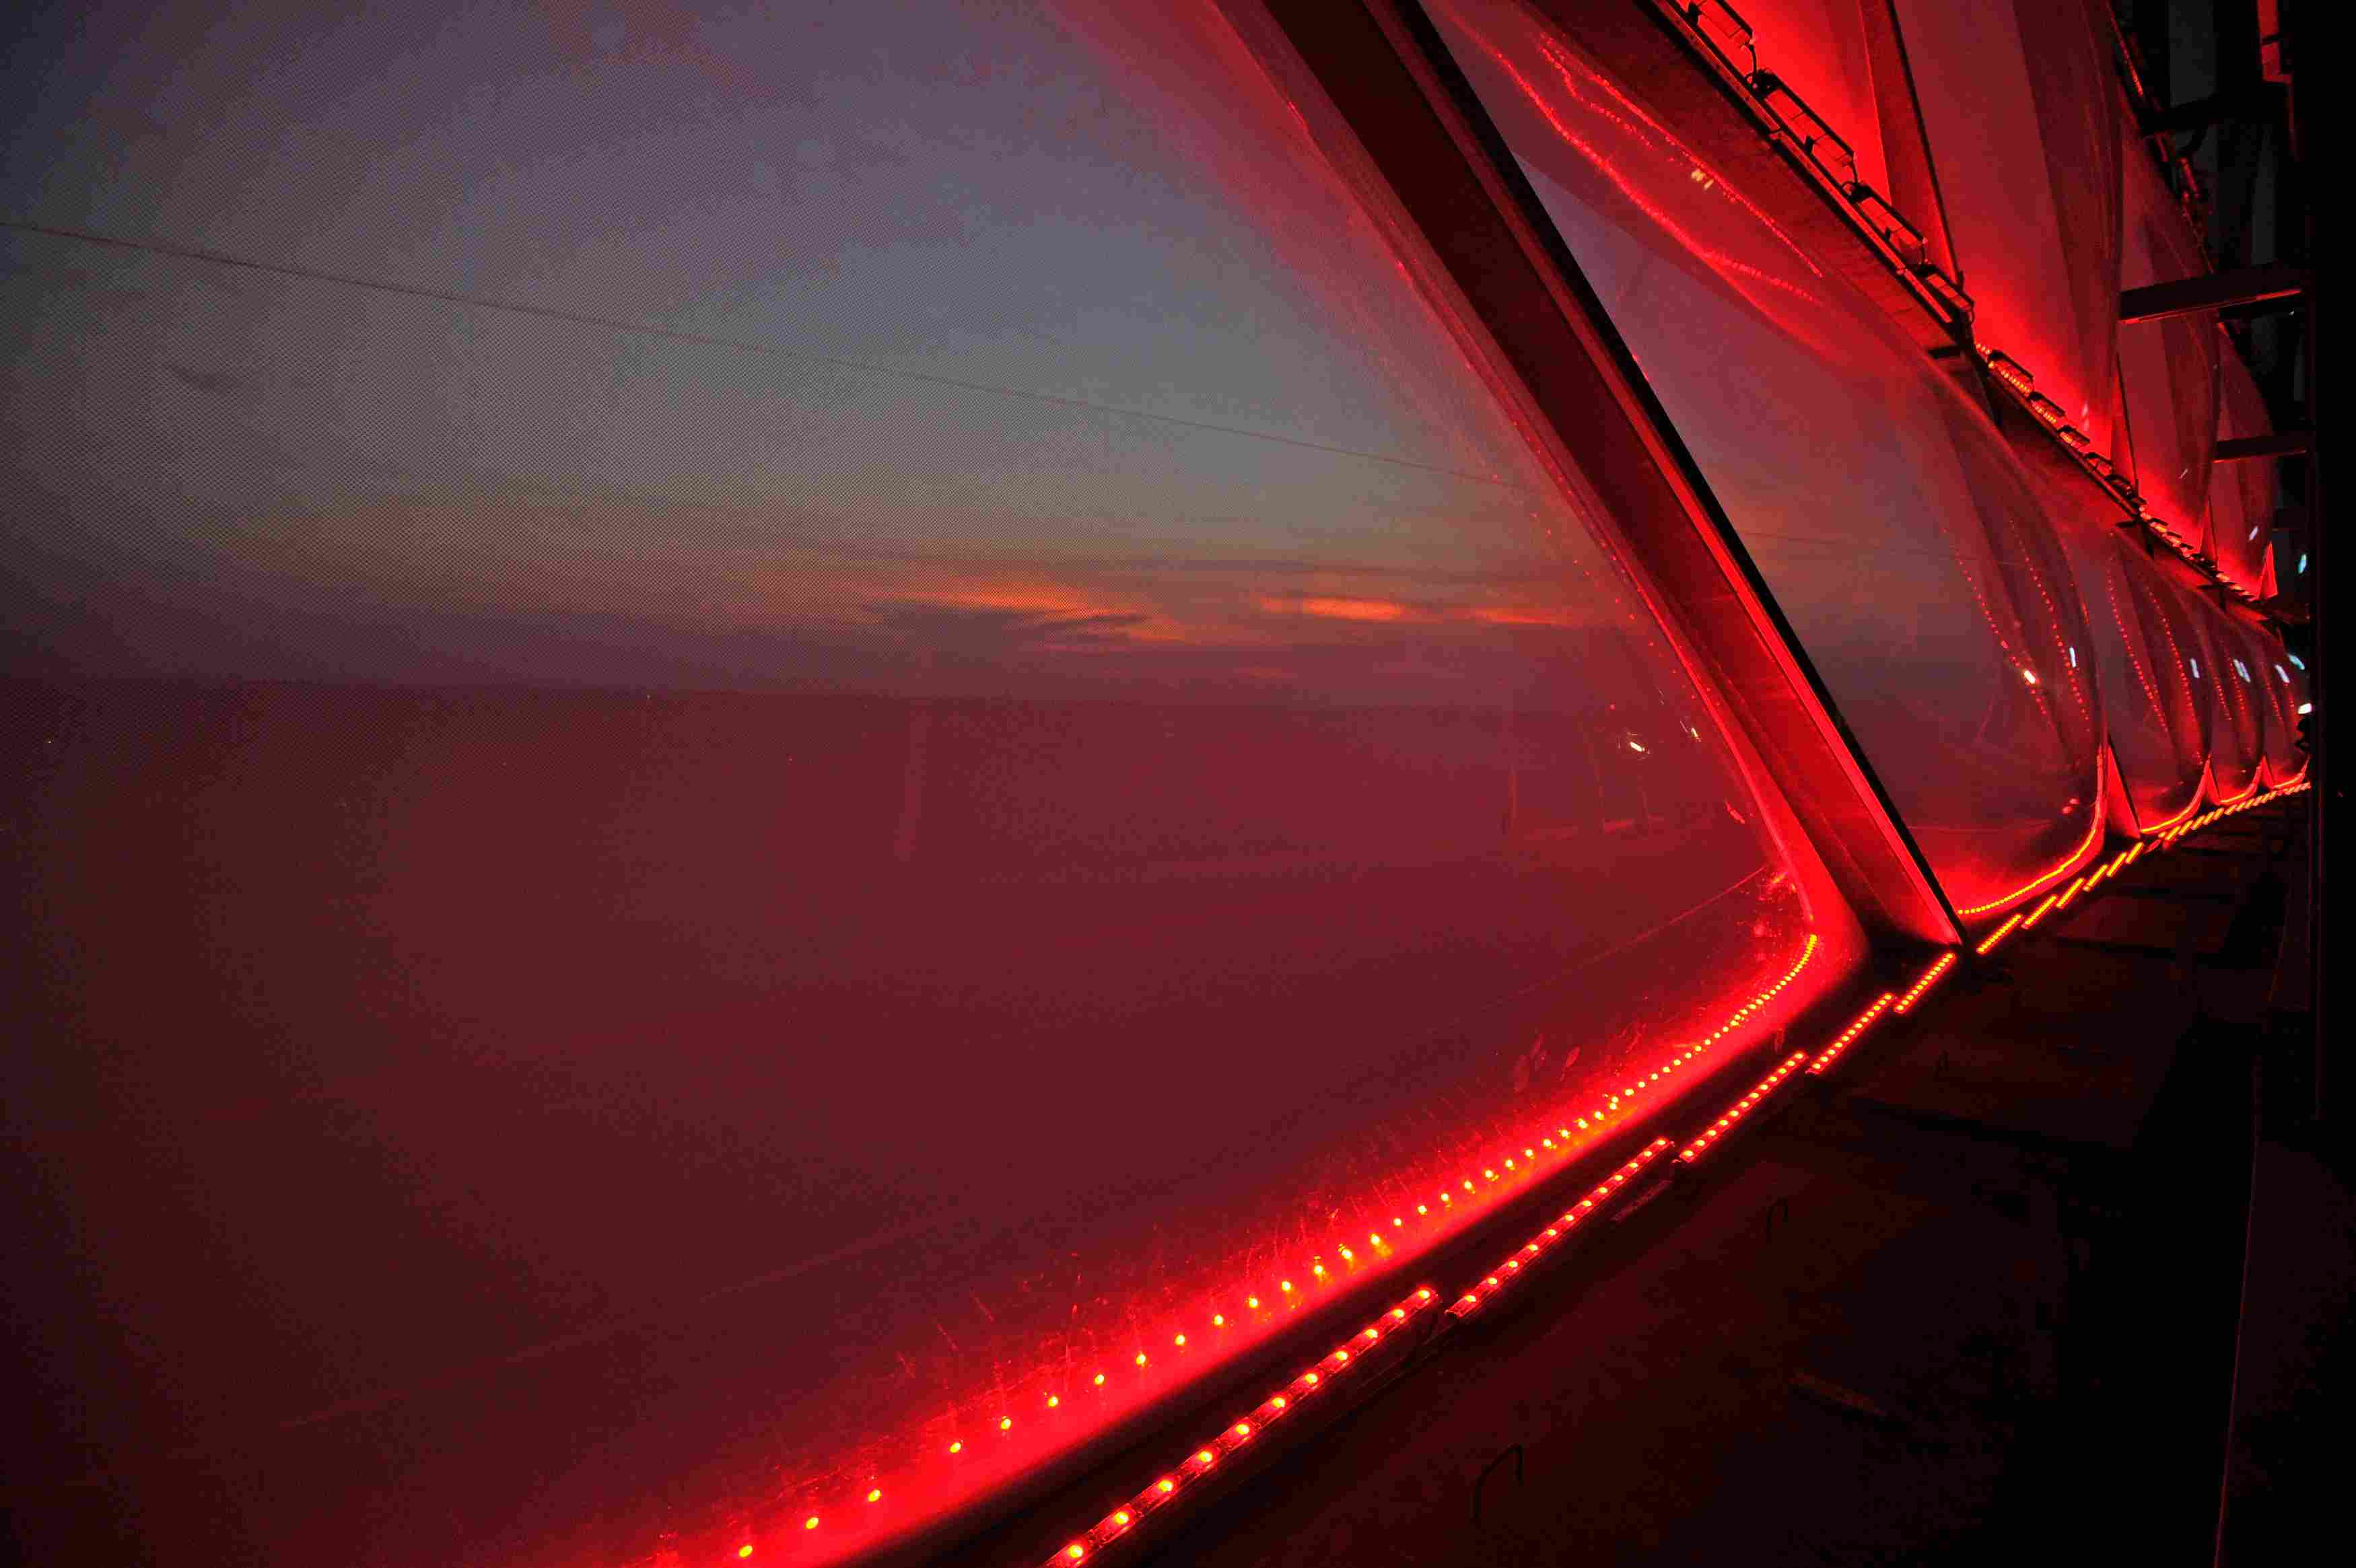 Close-up of small red lights surrounding ETFE plastic panels